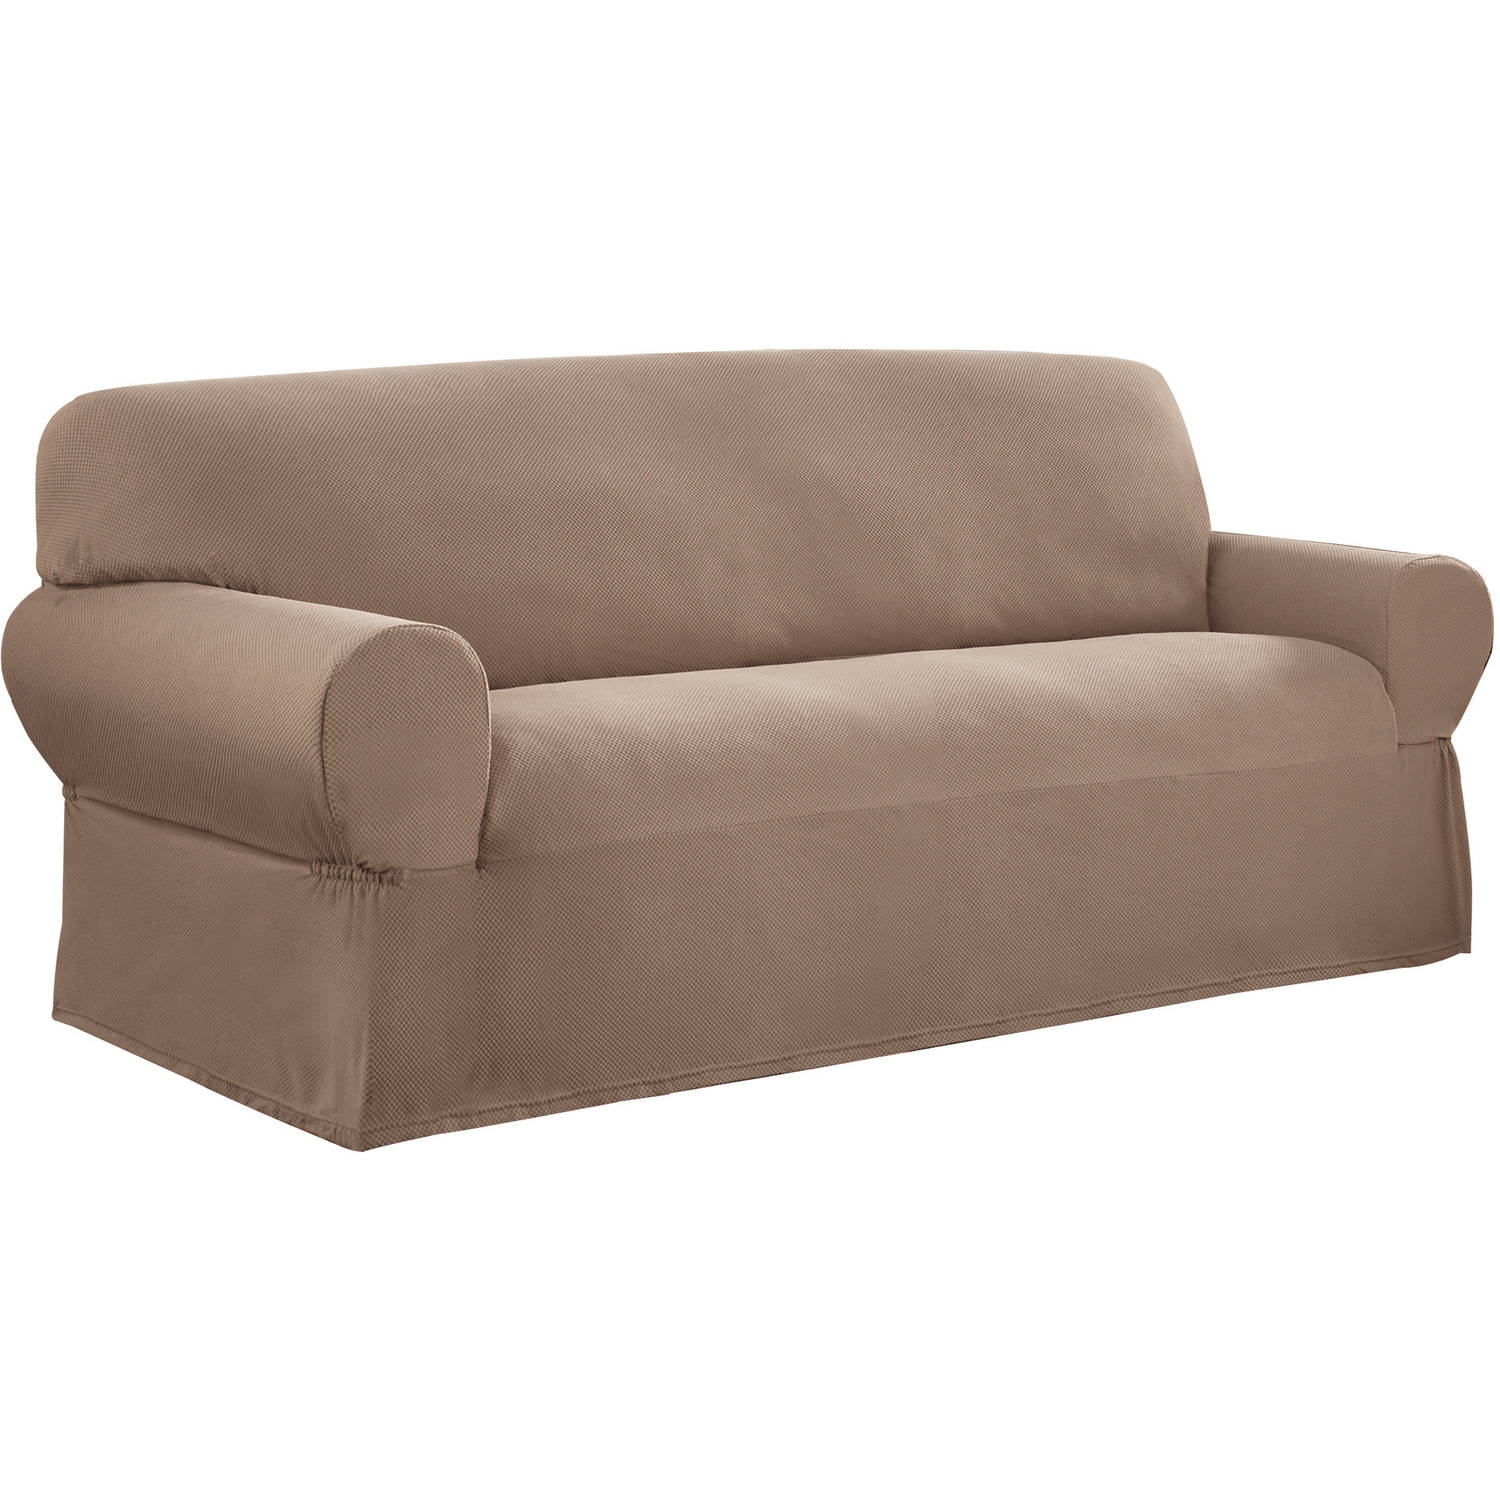 Sure Fit Stretch Grand Marrakesh 2 Piece Sofa Slipcover Walmart